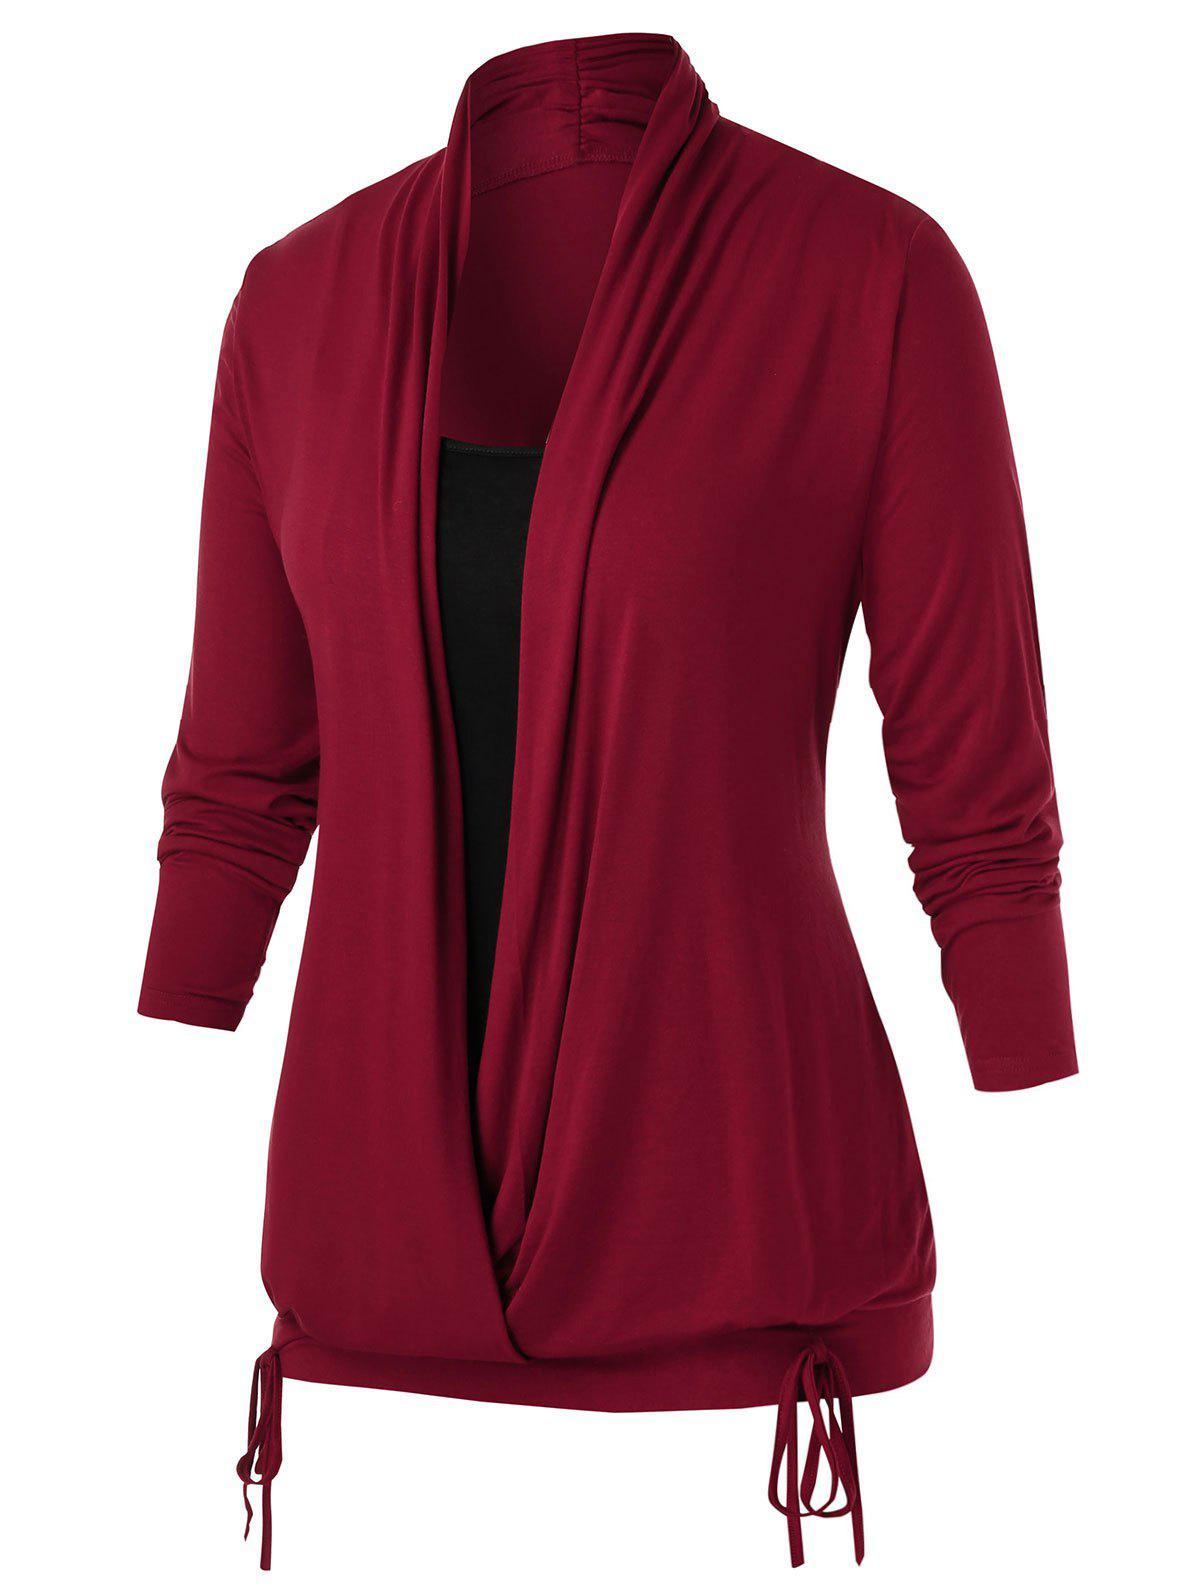 Plus Size Wrap Cowl Neck Two Tone T Shirt - RED WINE 5X